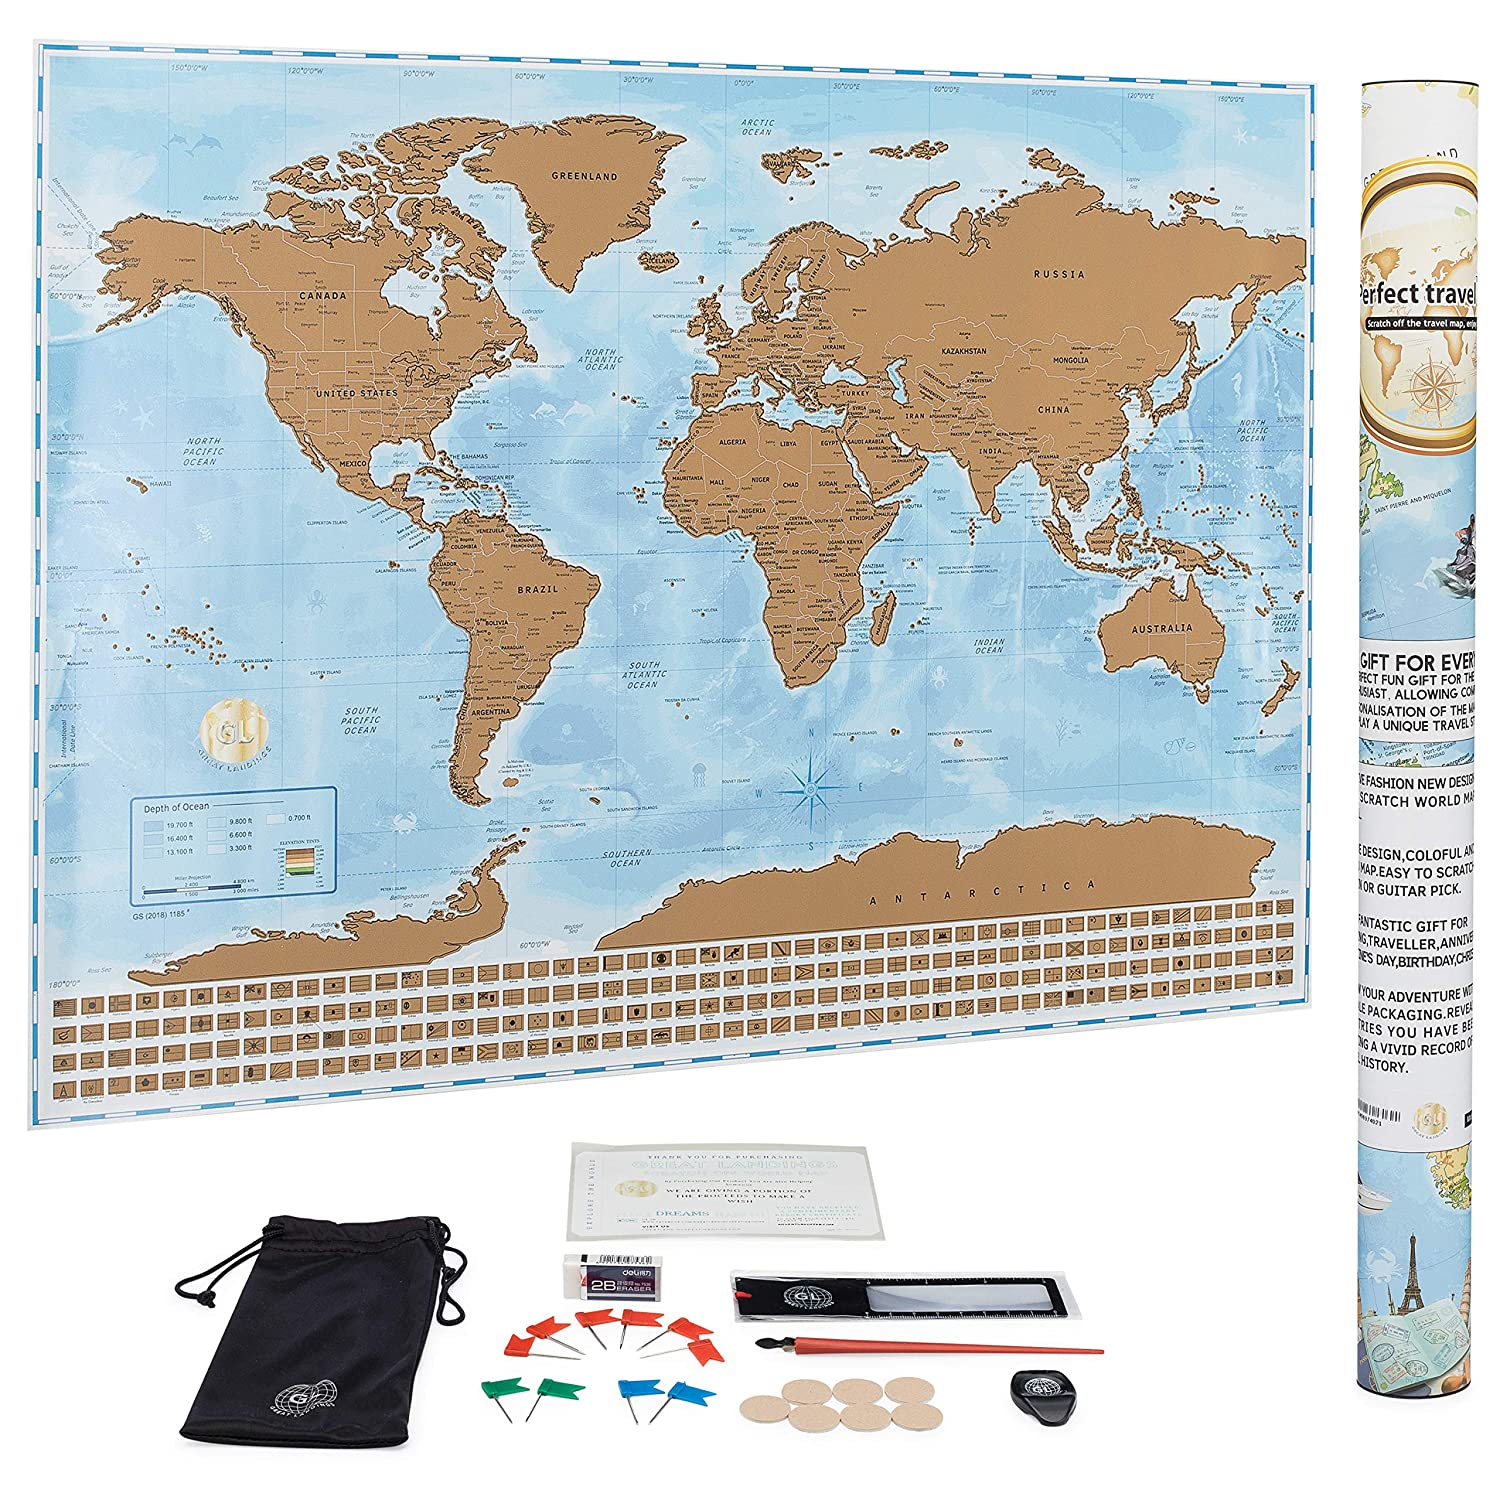 Great Landings Large Scratch Off Map of The World with Country Flags, Premium Scratcher, and Accessories is a Great Gift for Travel Enthusiasts; Wall Art Travel Map Poster; 32 inches X 24 inches